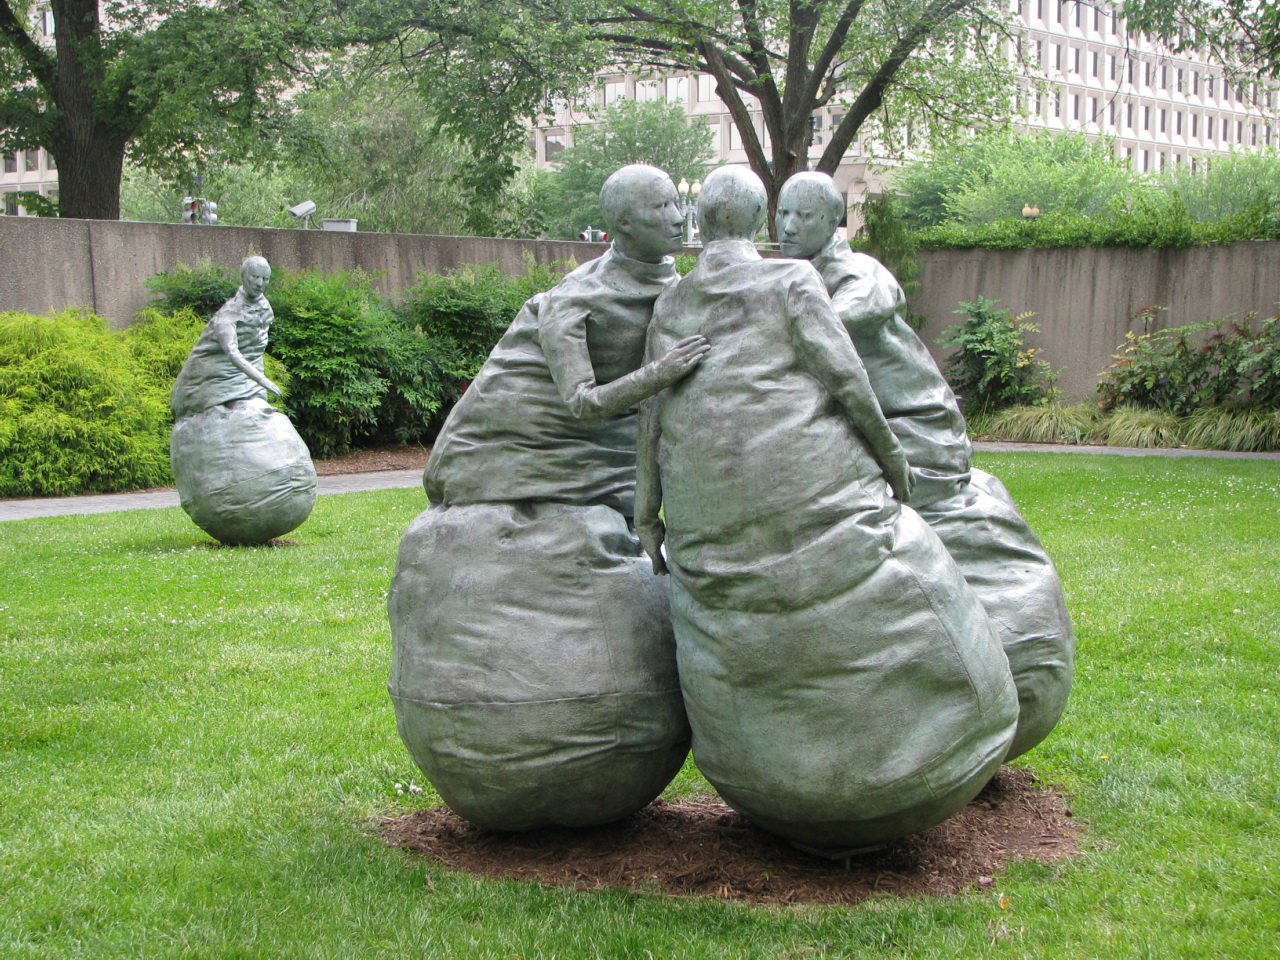 a picture of statues having a conversation